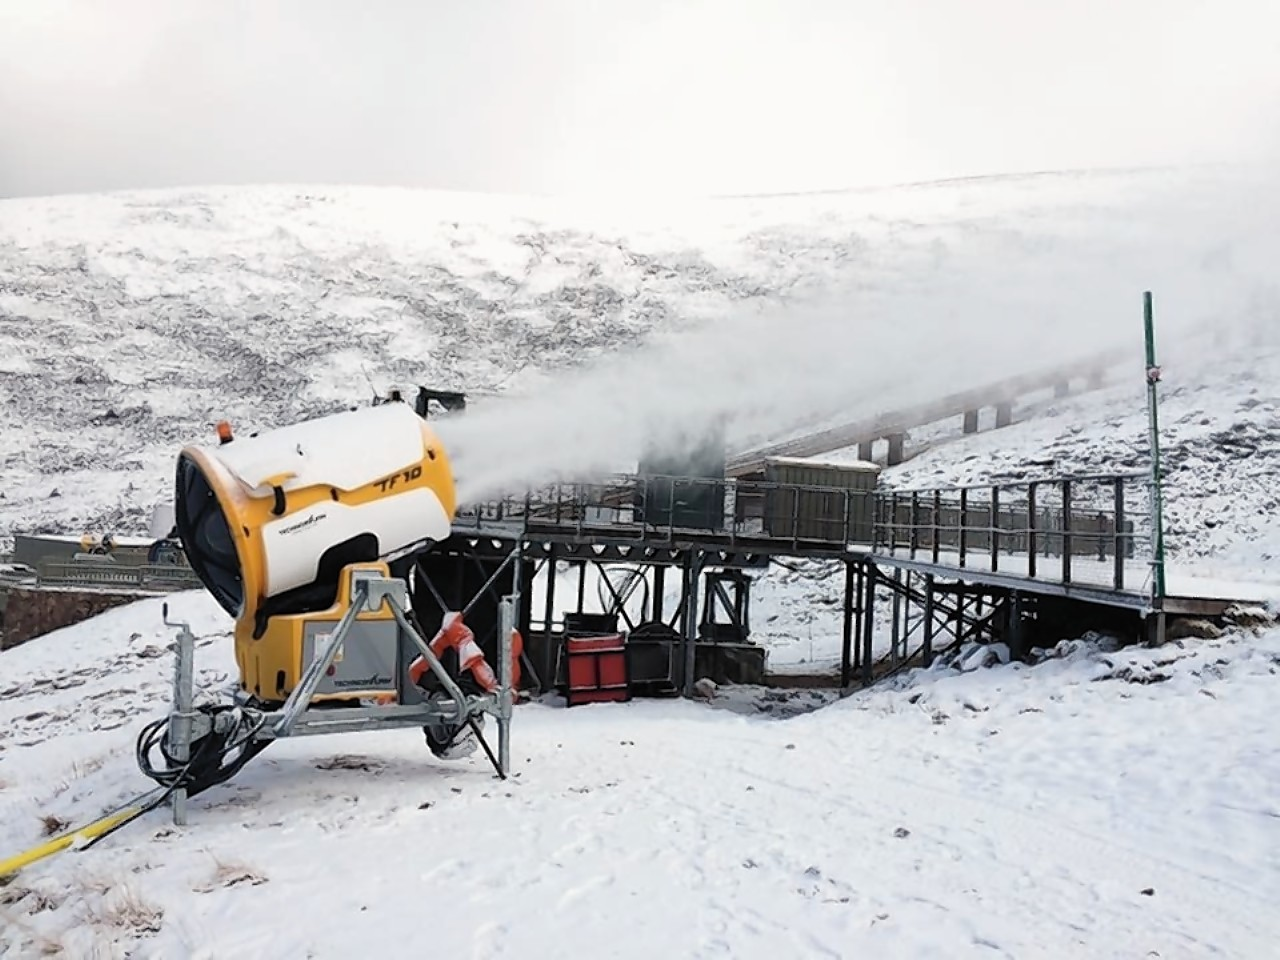 One of the CairnGorm Mountain snow canons helping to boost snow cover on the mountain